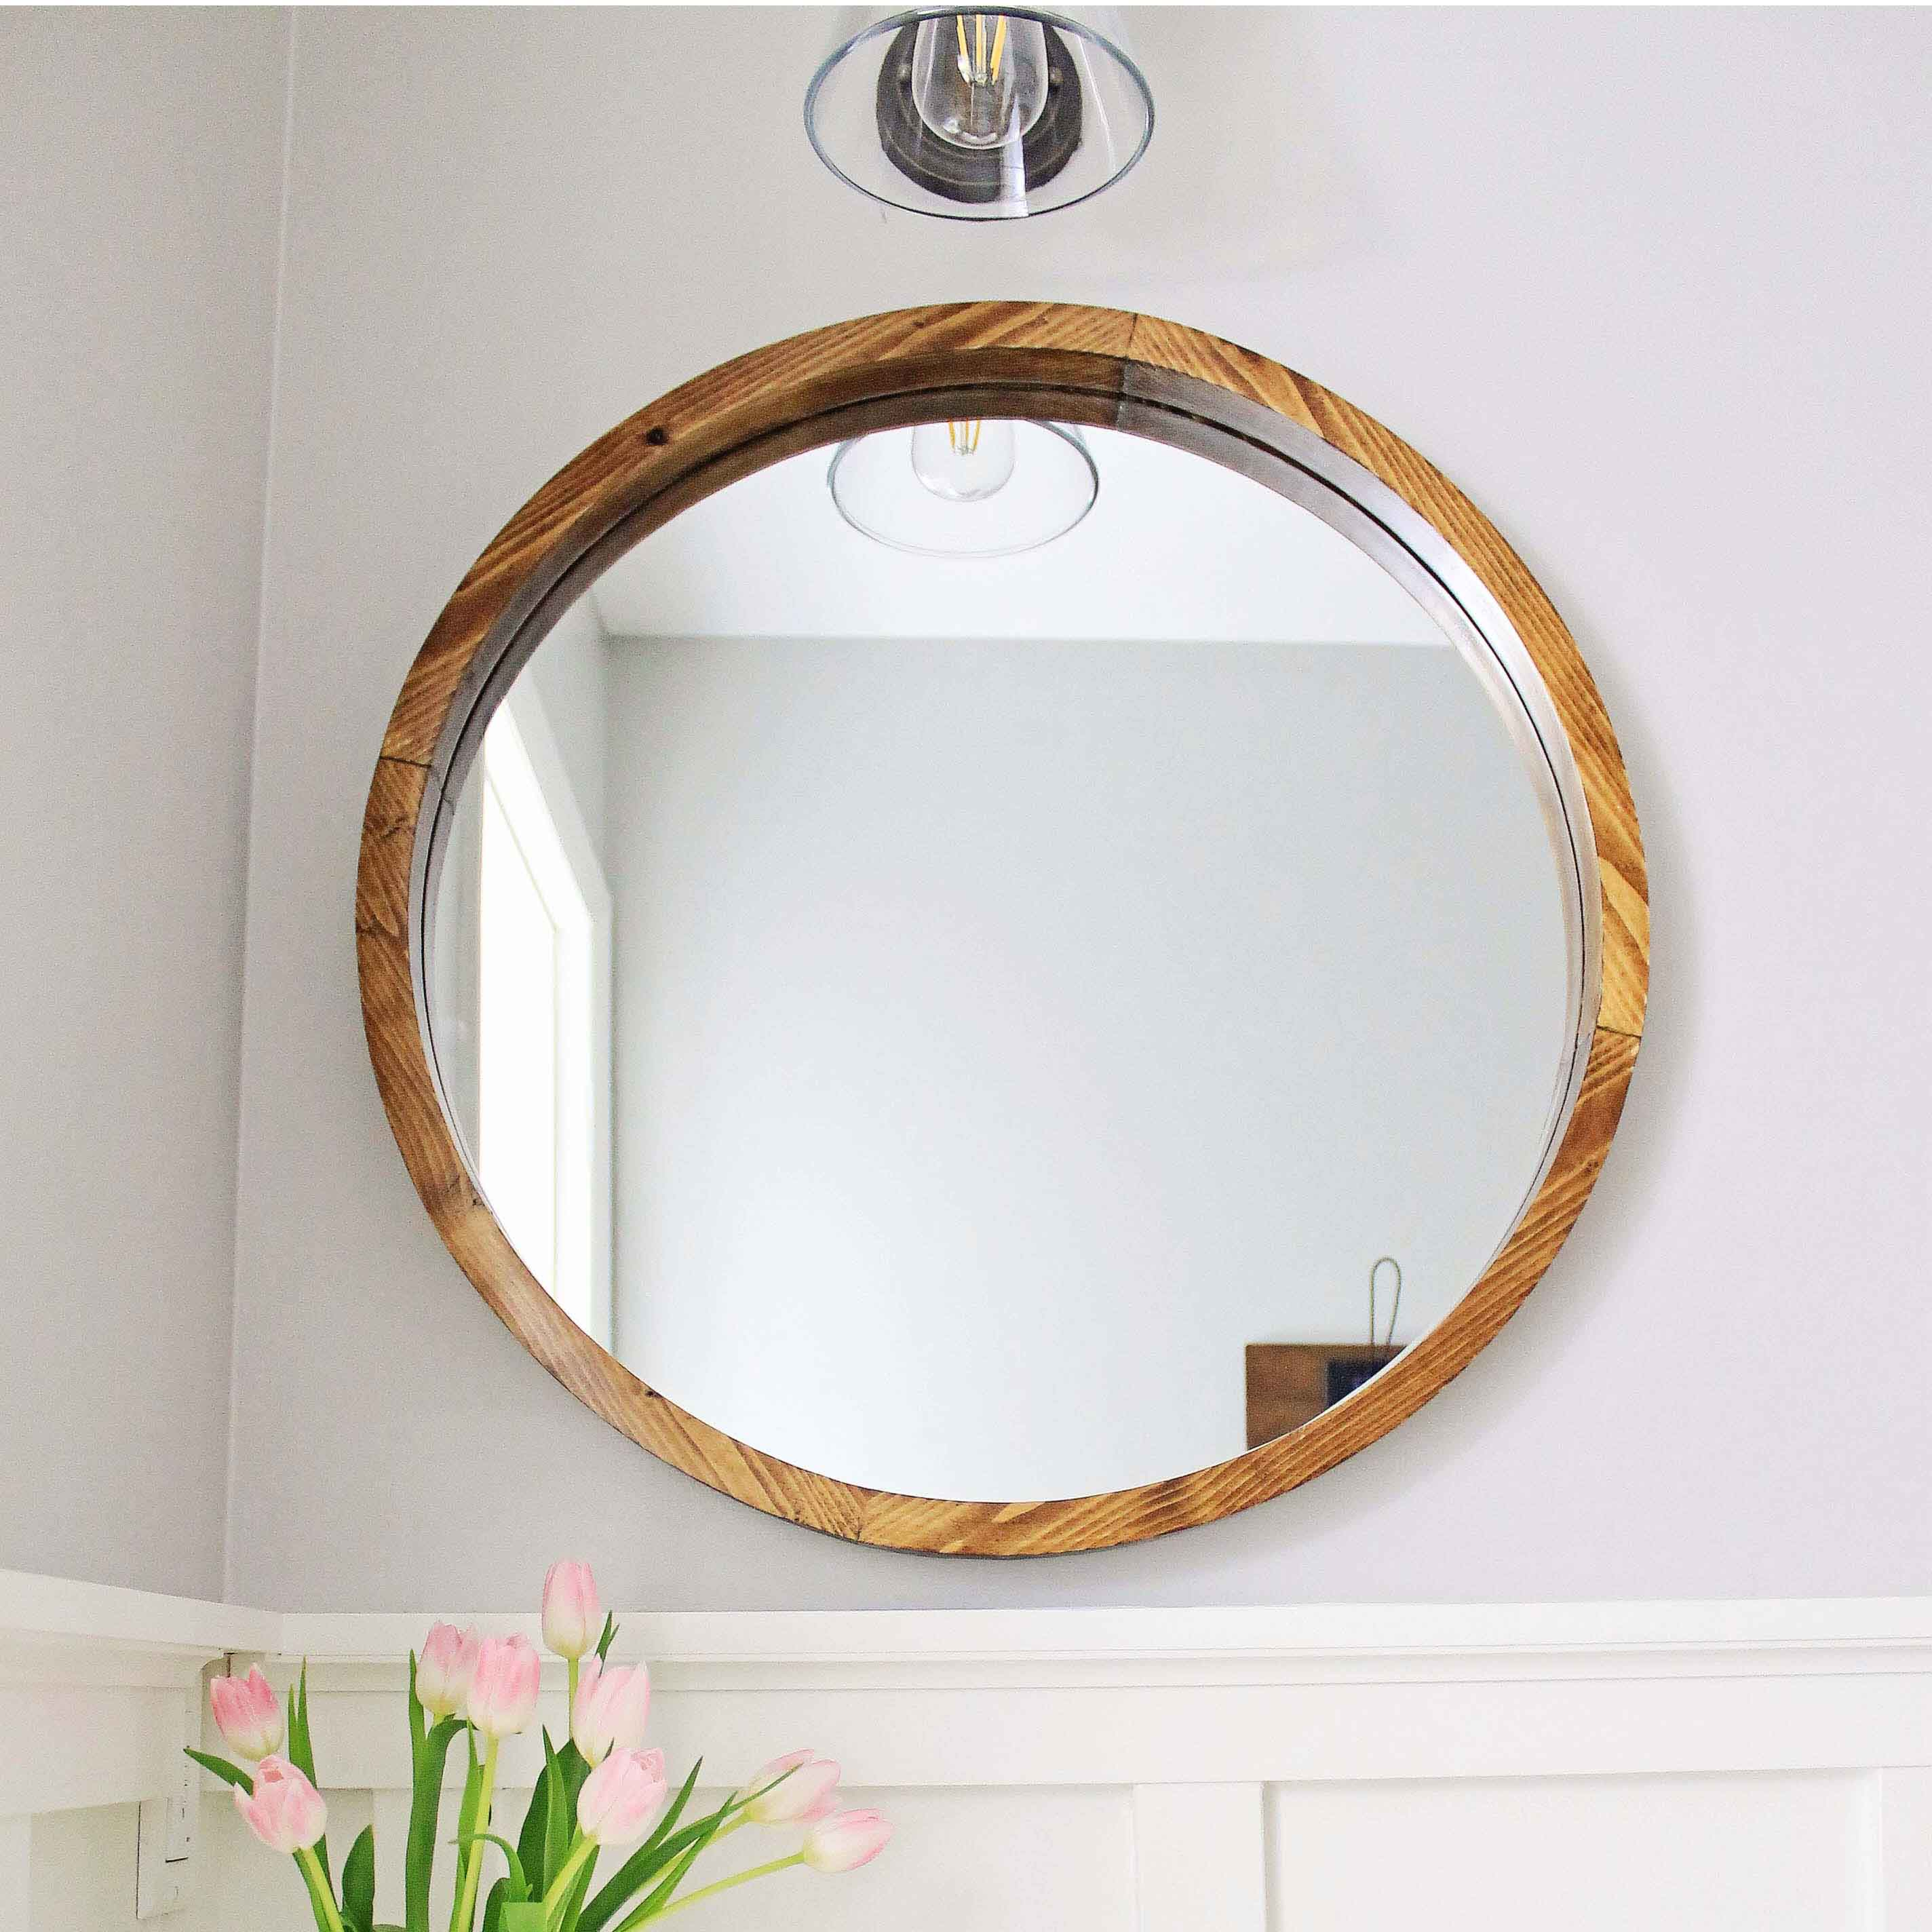 Round wood mirror diy angela marie made for Mirror o mirror